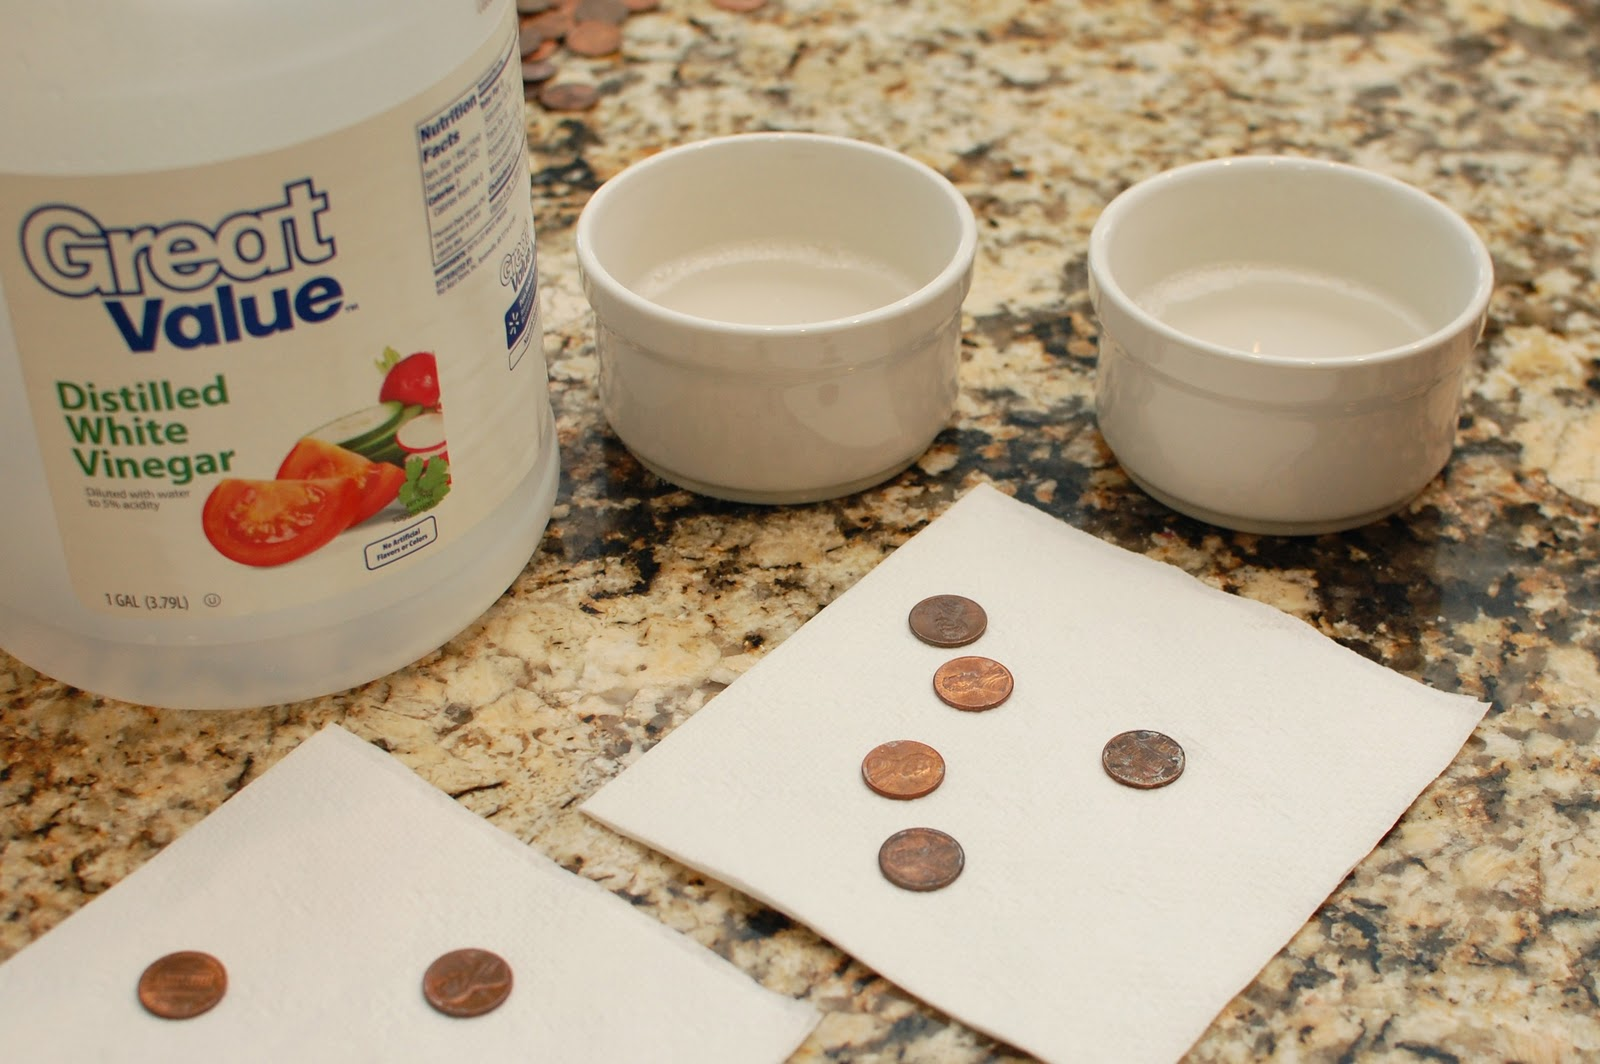 White vinegar and a tsp of salt in a bowl